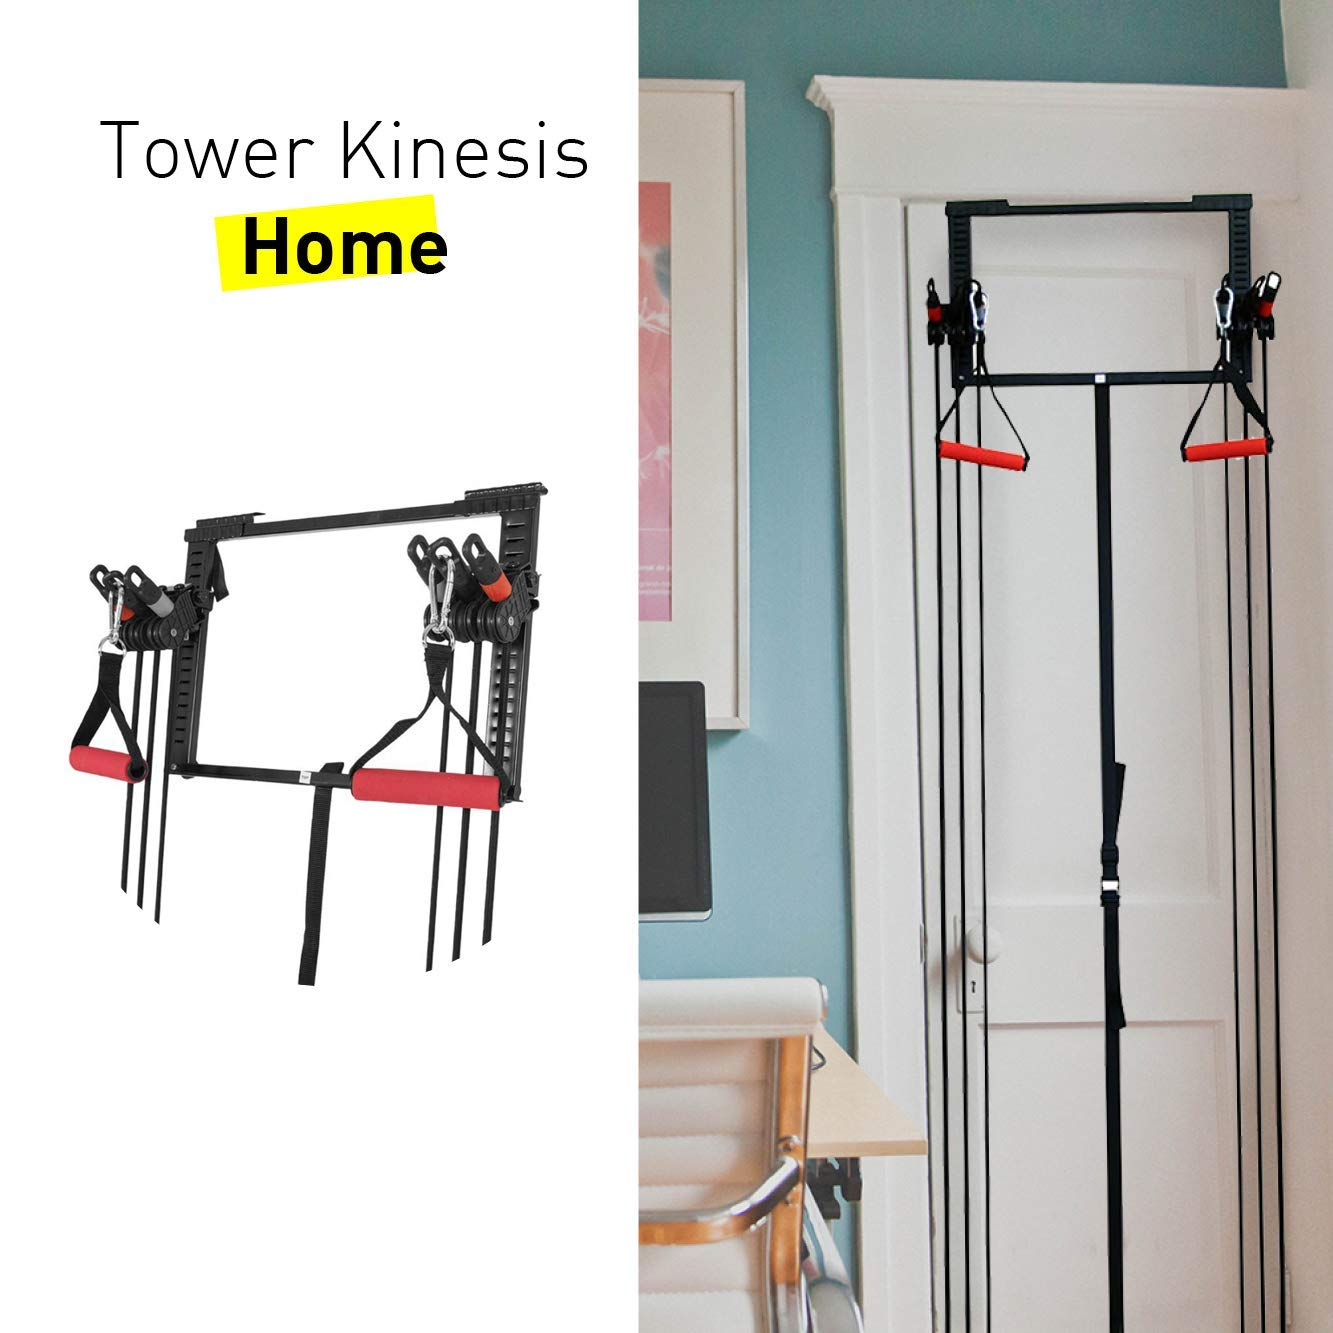 CloverFitness Tower Short Bar Door Pulley Pull-ups, Tensioners, Multiple Exercises, Unisex Adult, Black, M-L